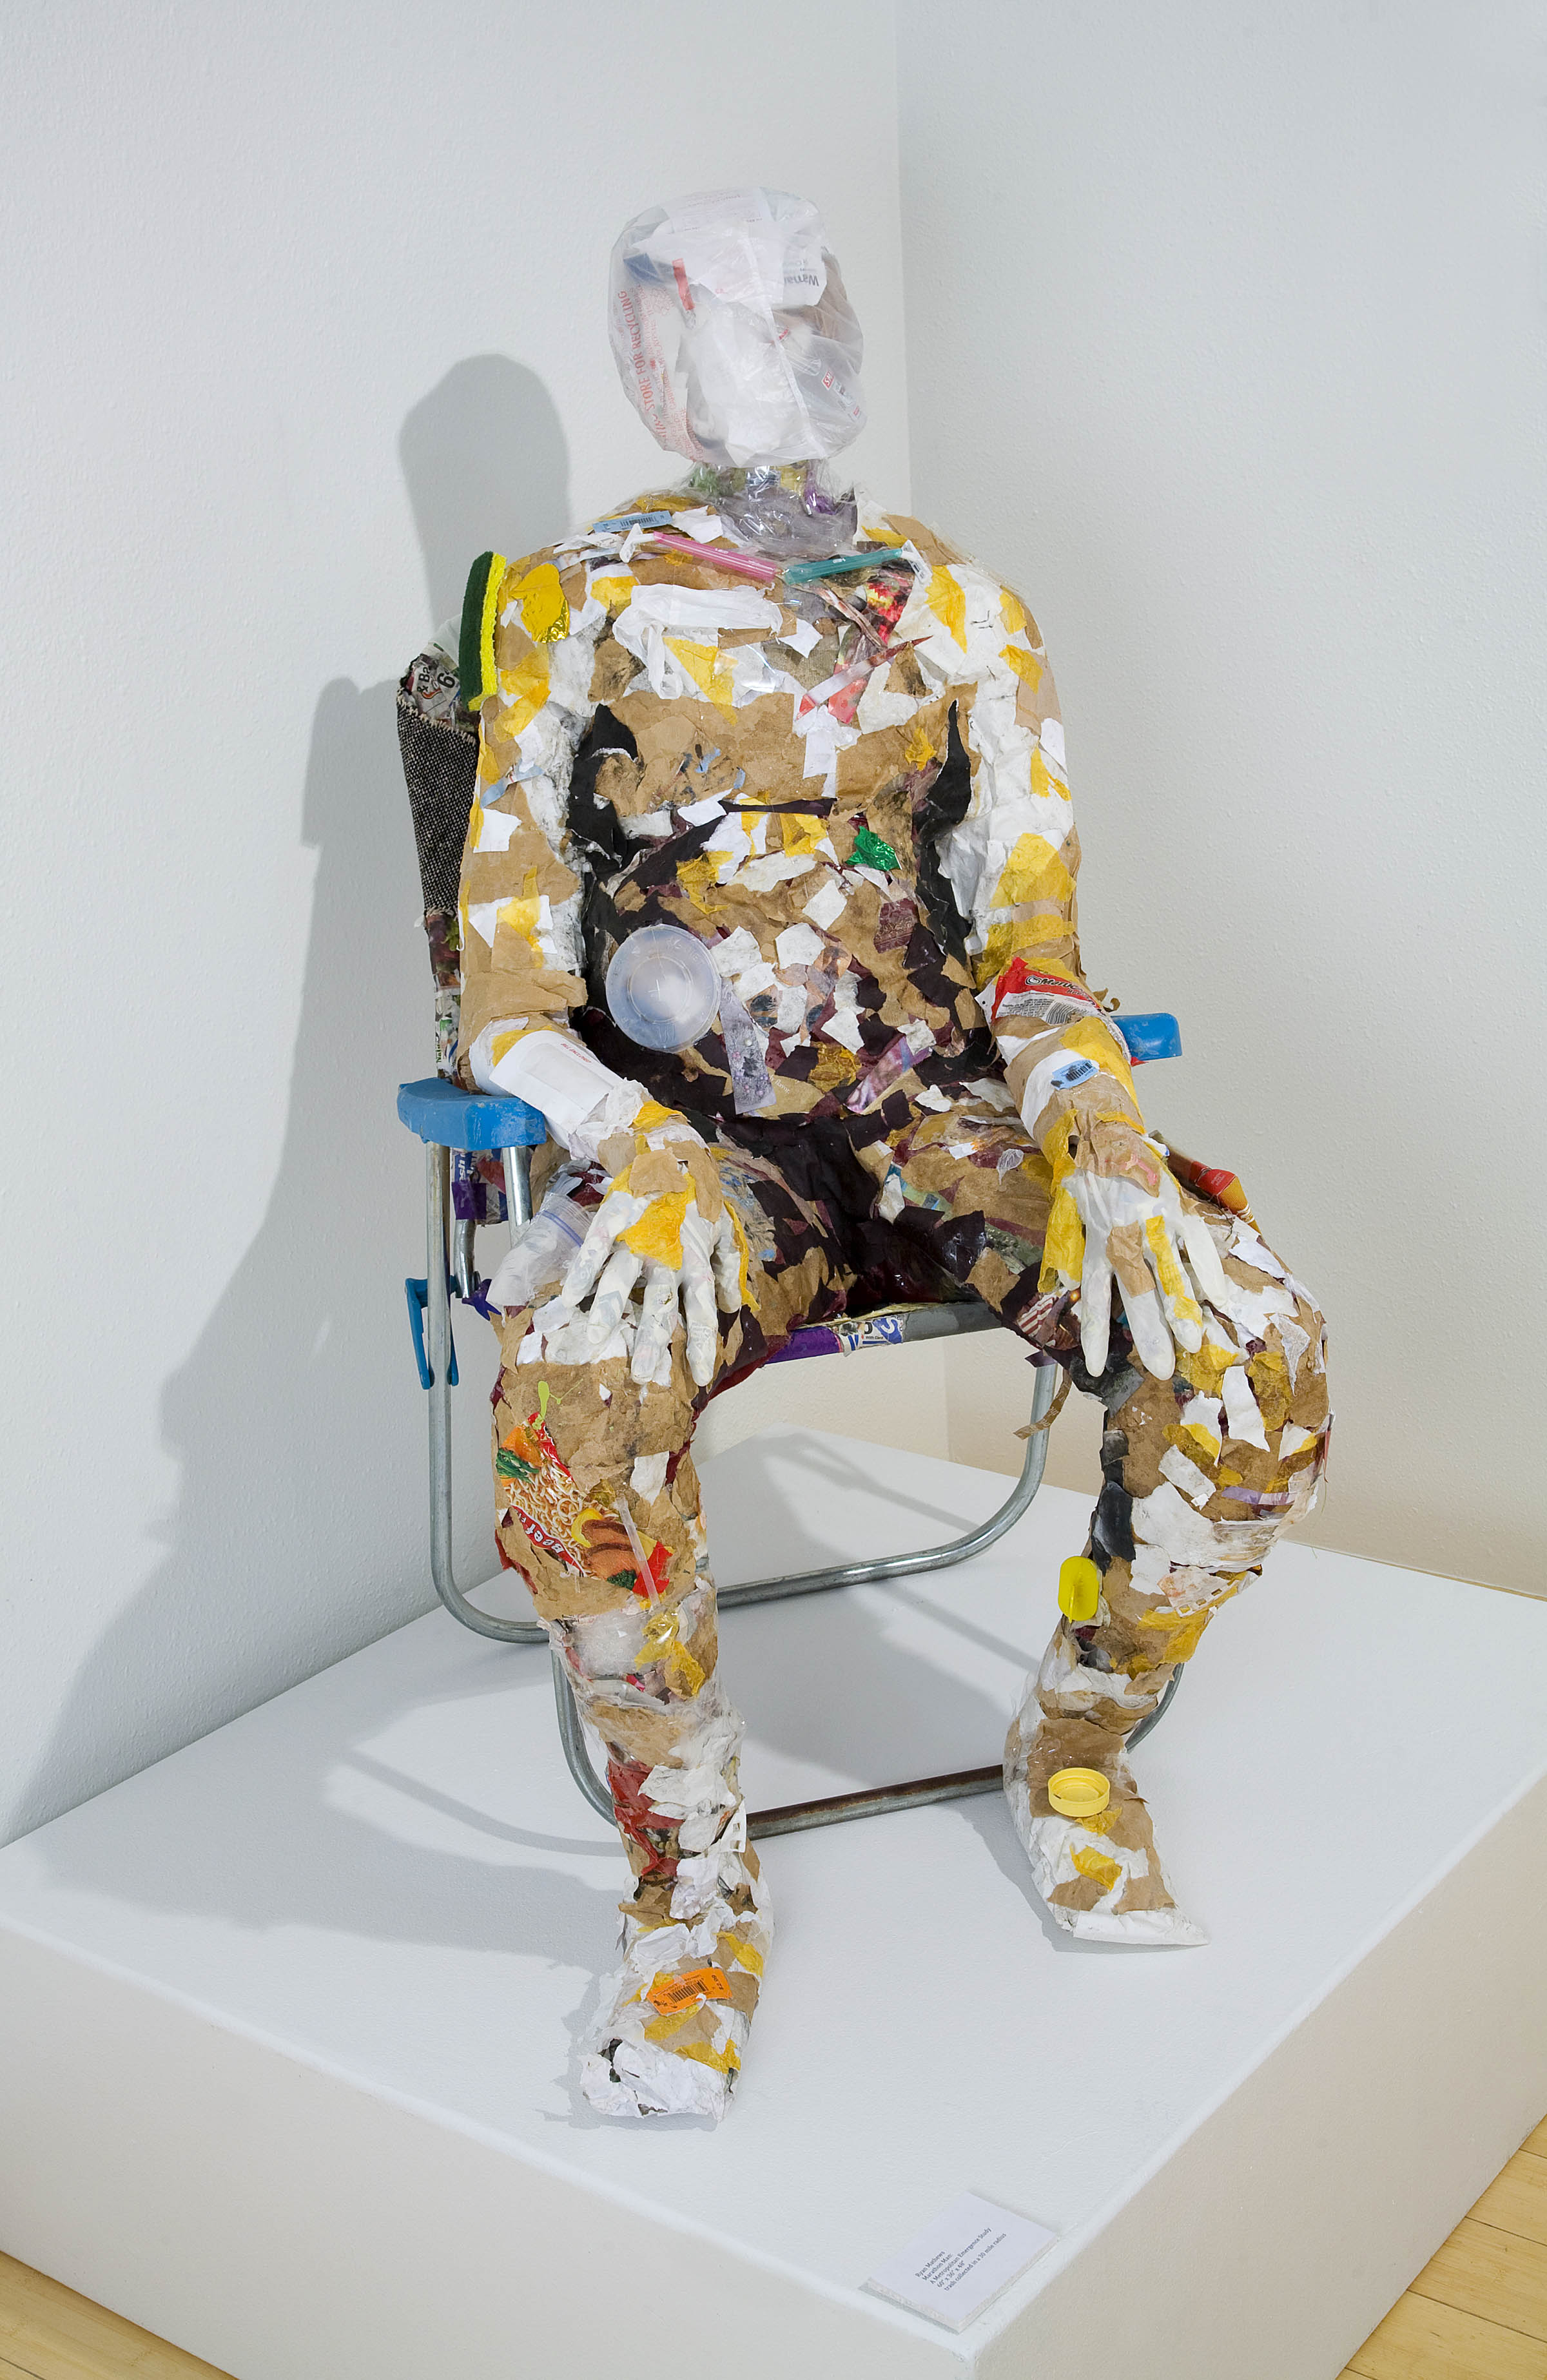 Paper Humanoid in lawn chair sculpture